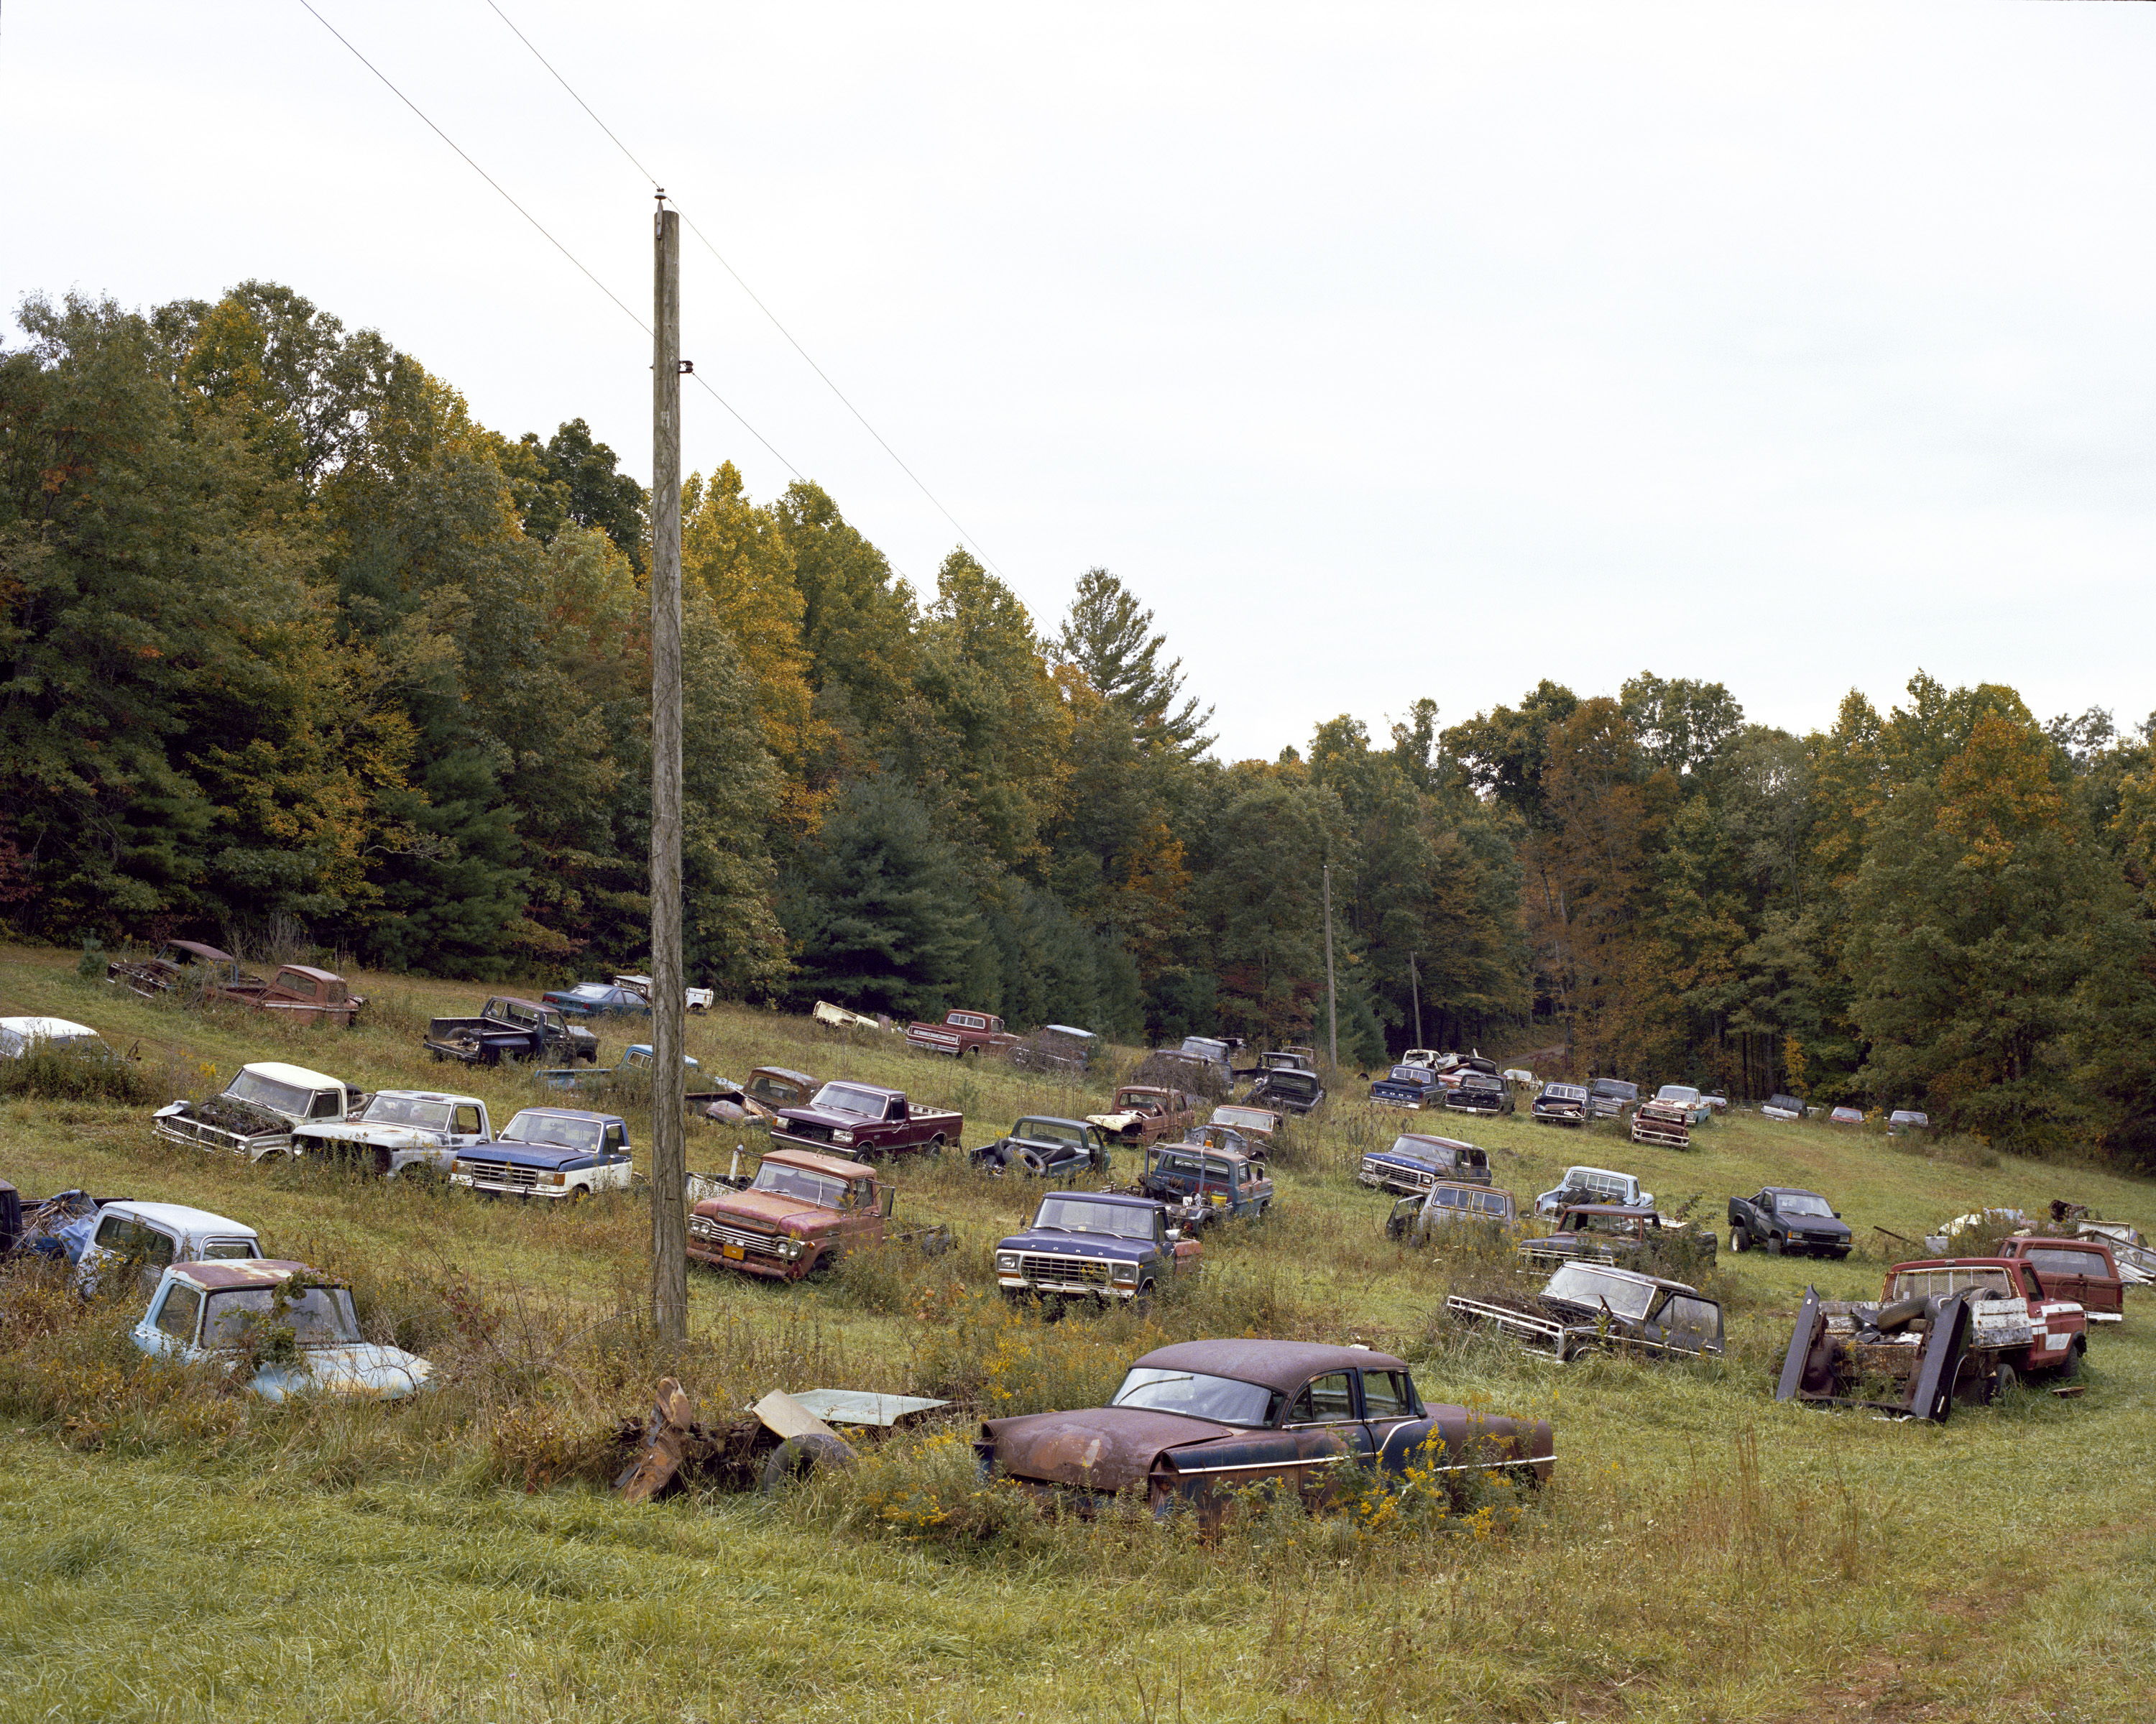 Dusty mile vintage car scrapyard (3)